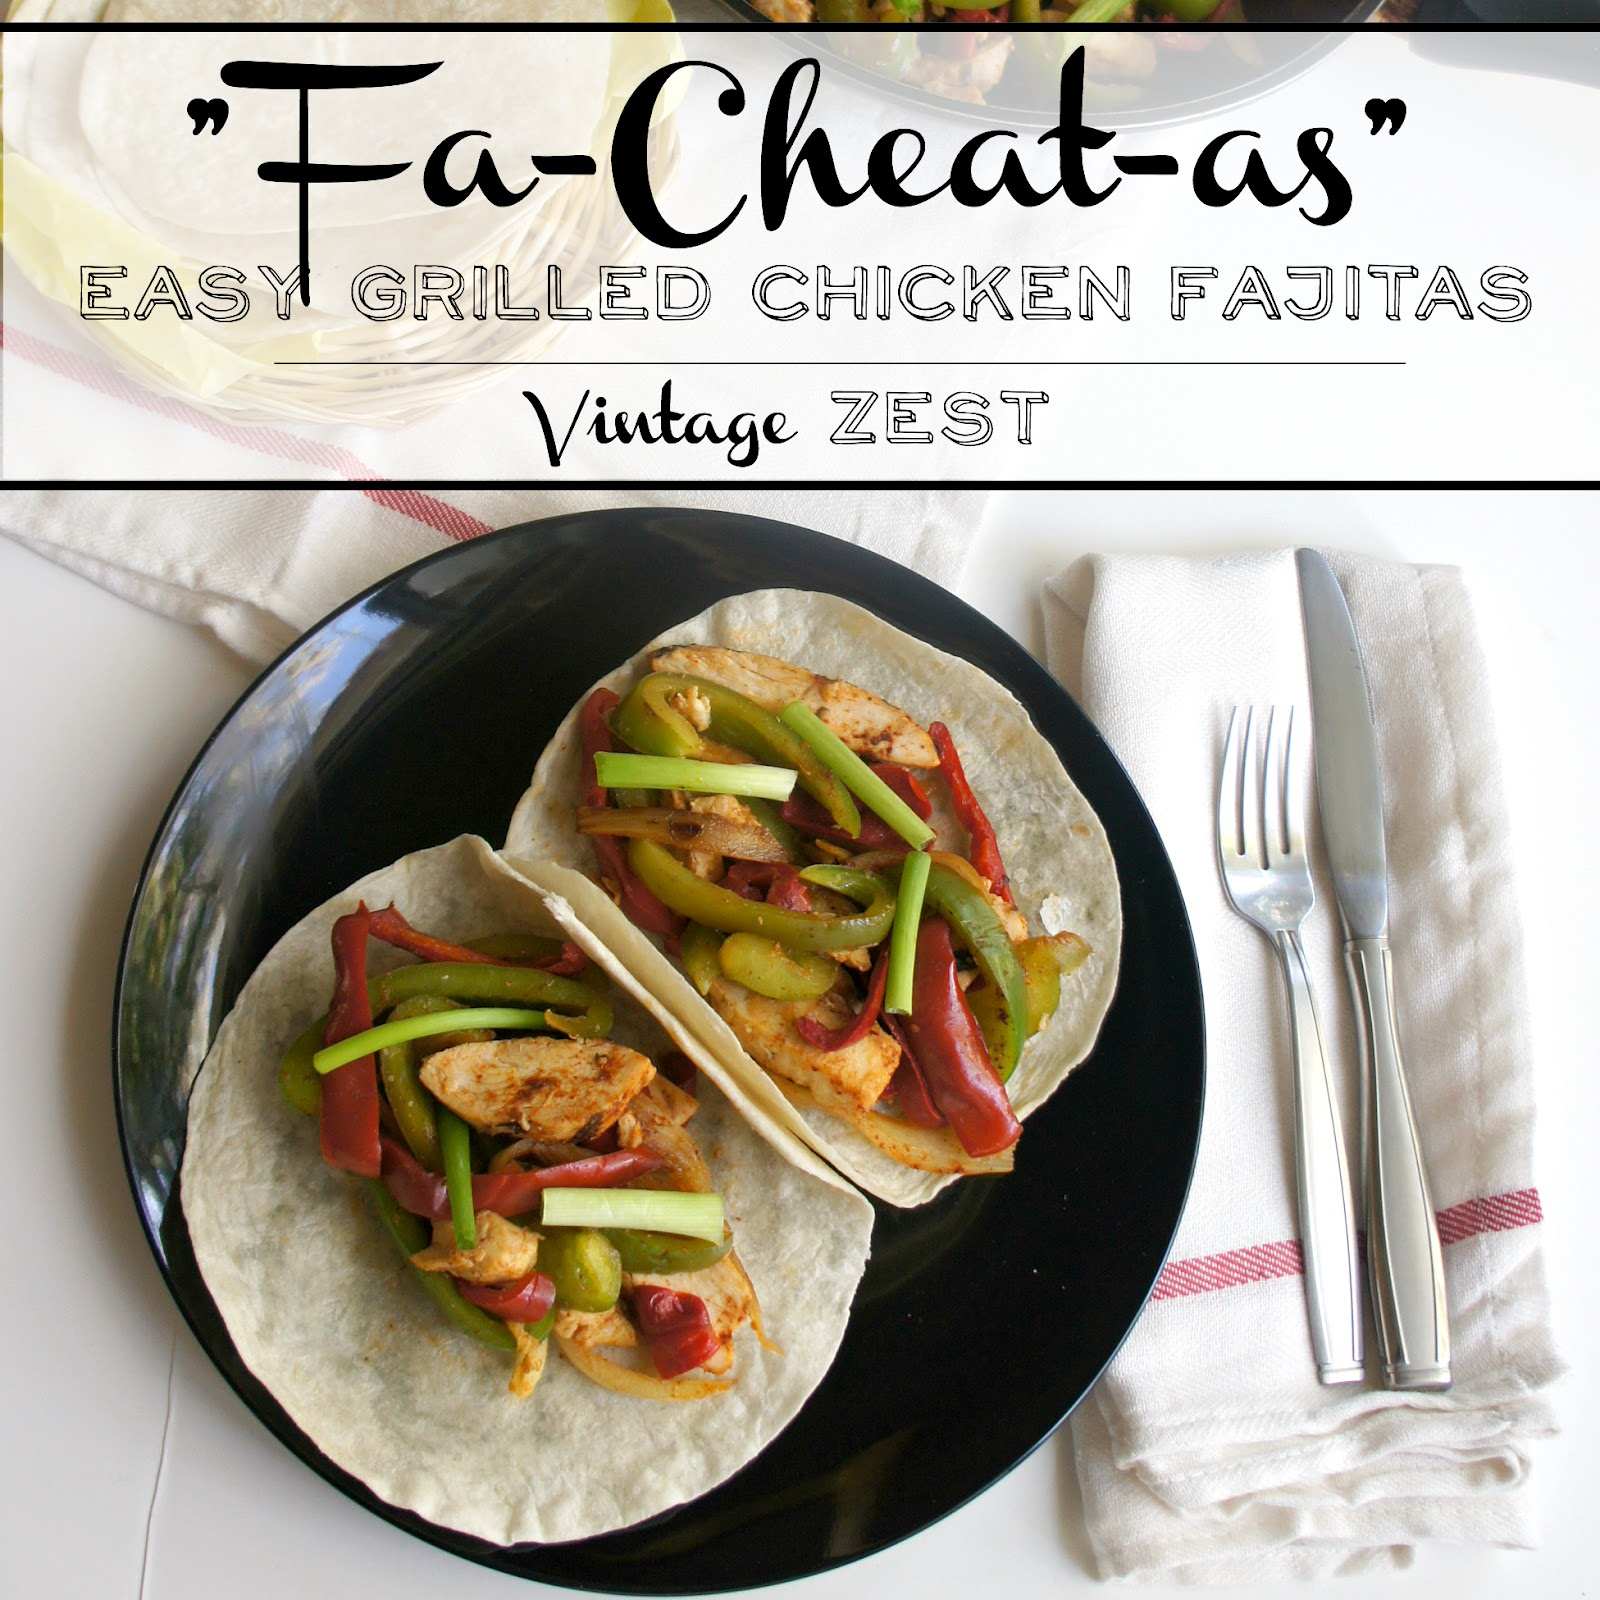 Fa-Cheat-as - Easy Grilled Chicken Fajitas! on Diane's Vintage Zest! #ad #ReadySetChicken #easy #weeknight #mexican #fajitas #recipe